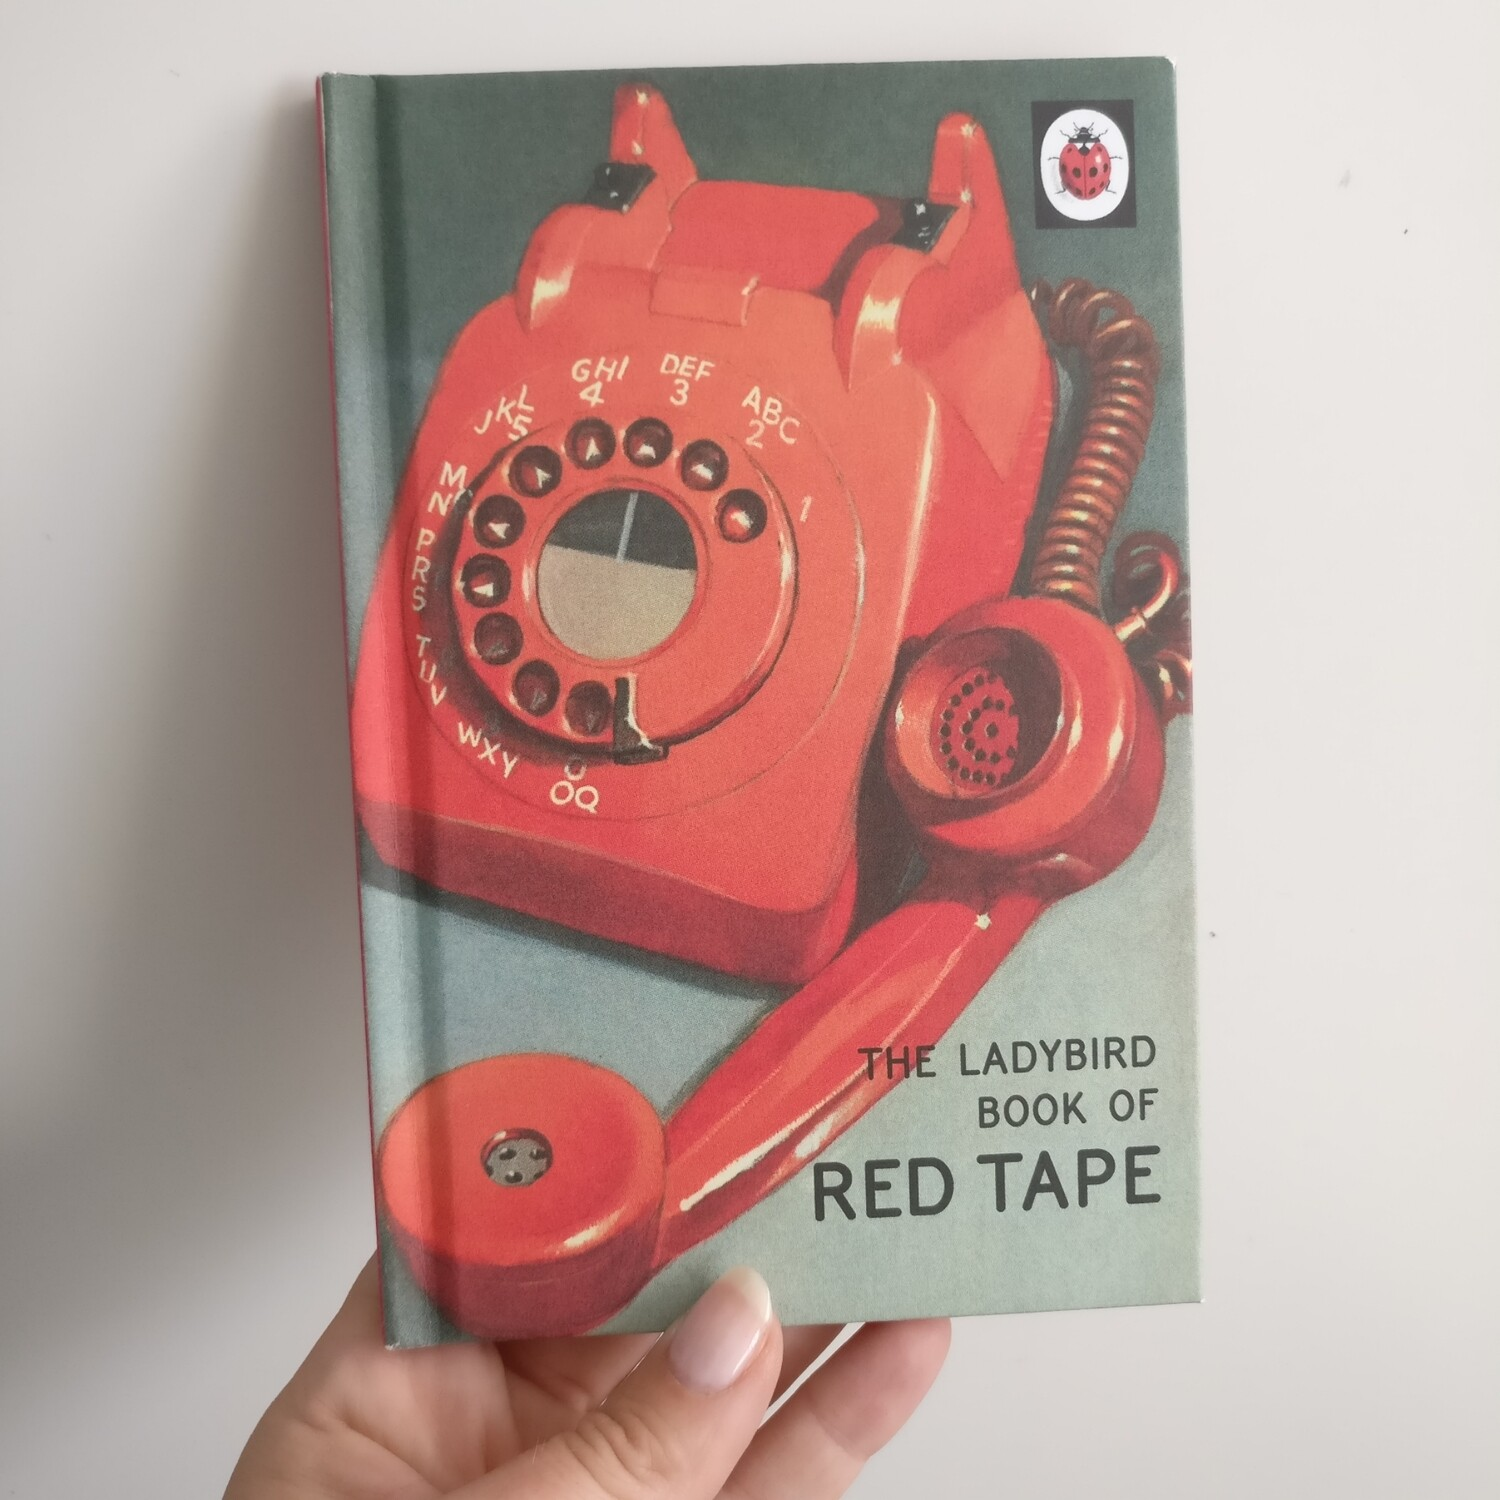 The book of Red Tape Notebook - Ladybird book - telephone, books for grown ups